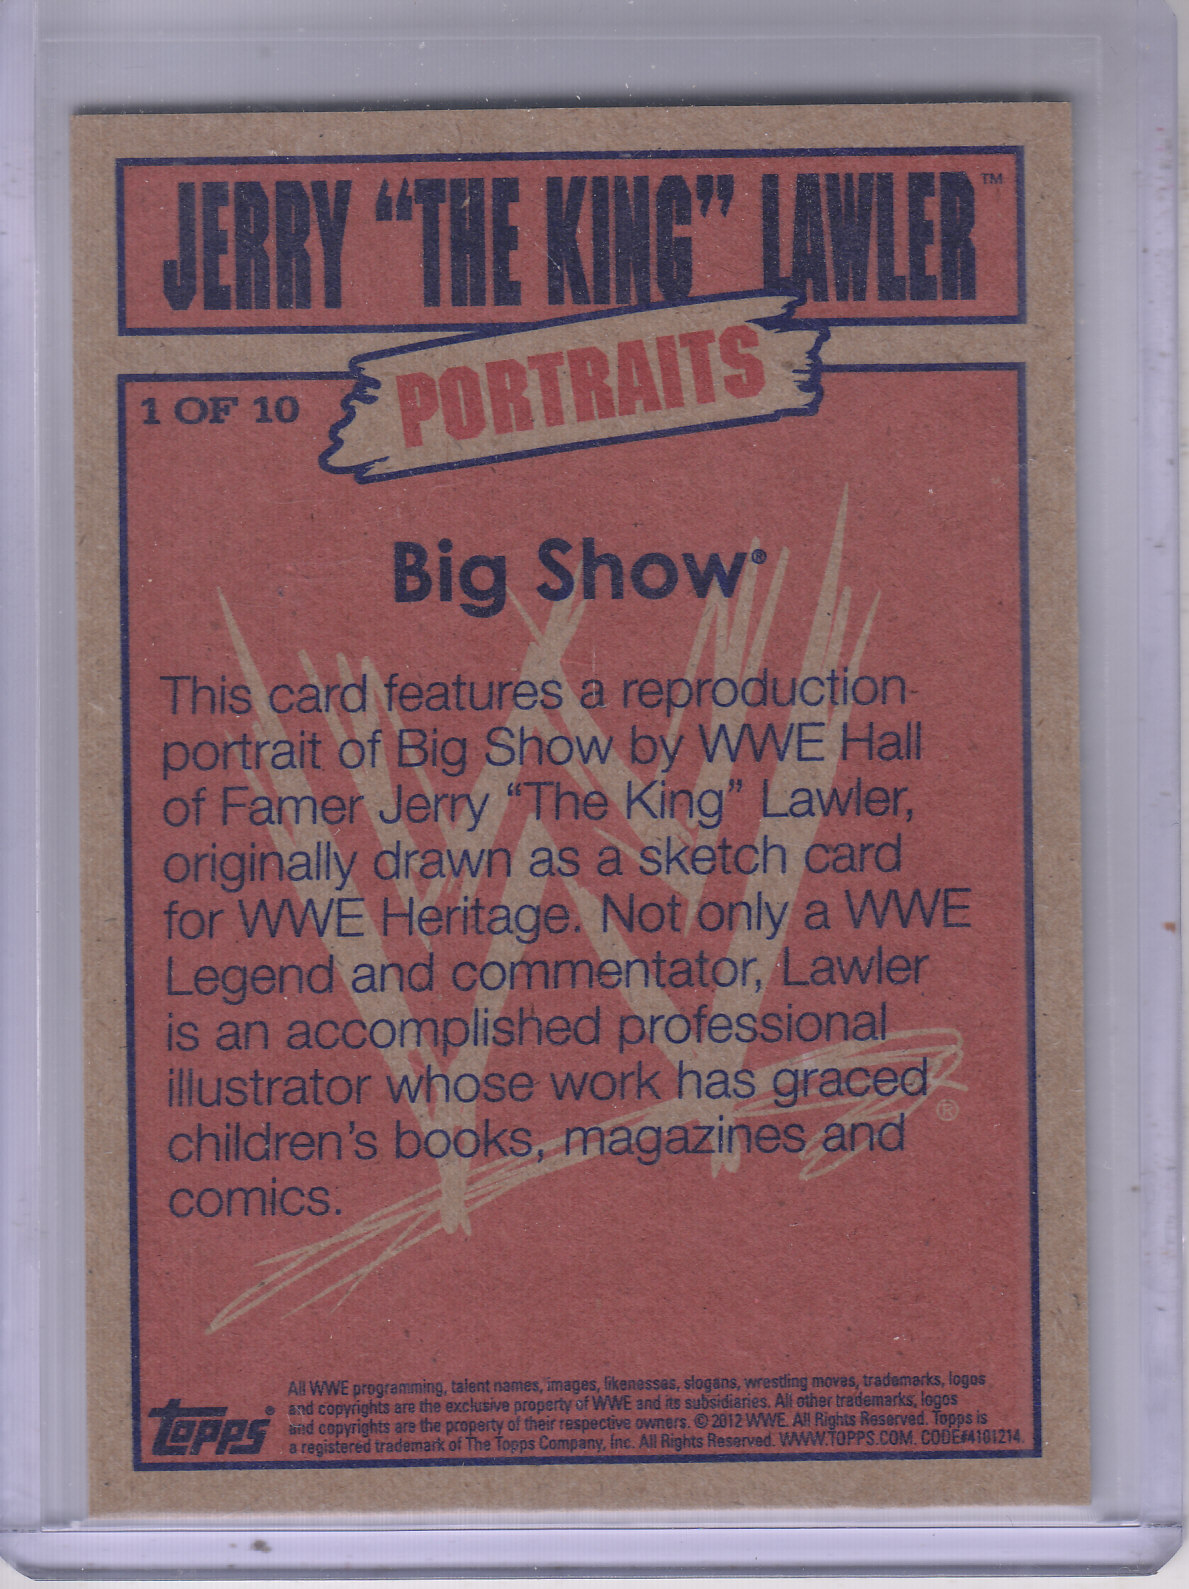 2012 Topps Heritage WWE Jerry the King Lawler Portraits #1 Big Show